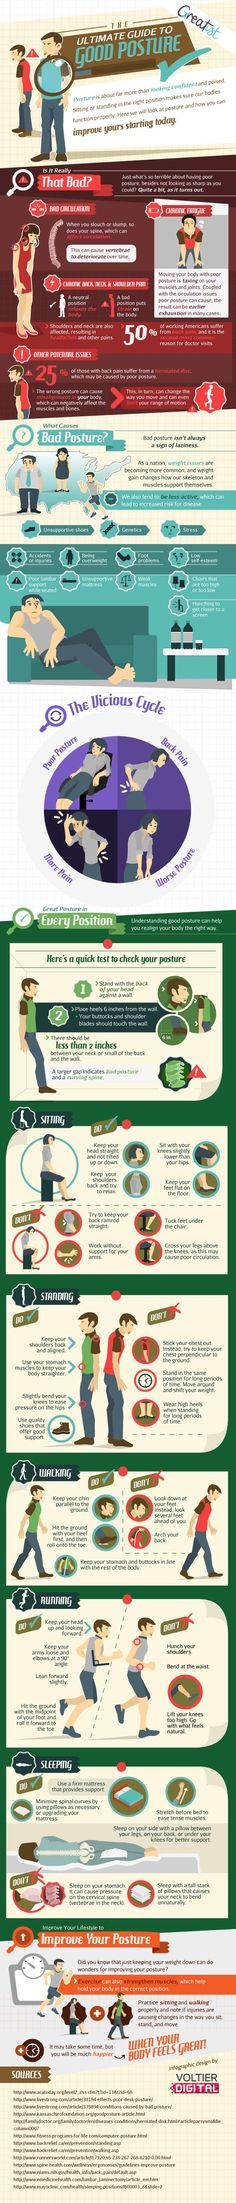 #good #posture #infographic #master #correction #exercises #sitting #standing #texting #proper #tips